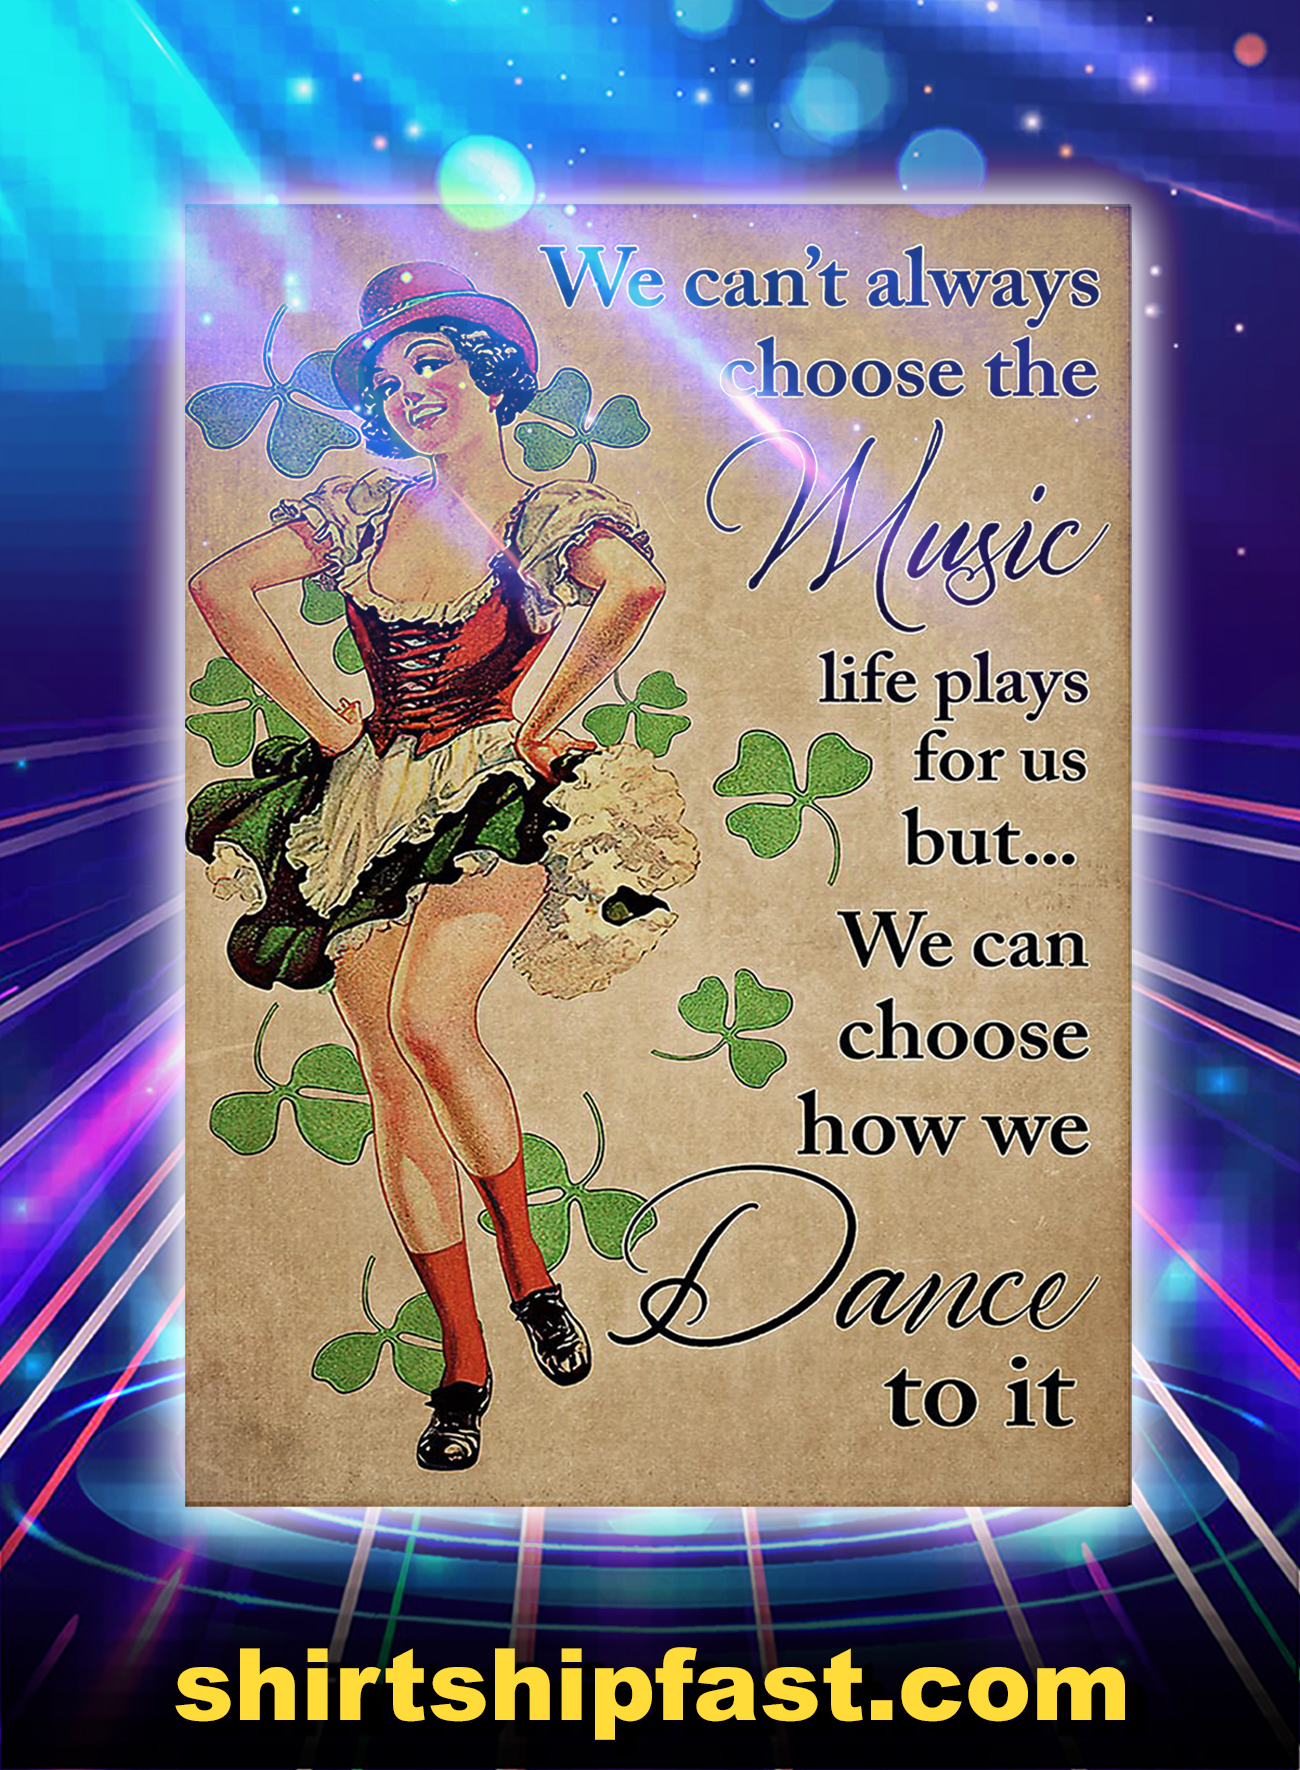 Irish dancing we can't always choose the music life plays for us poster - A1